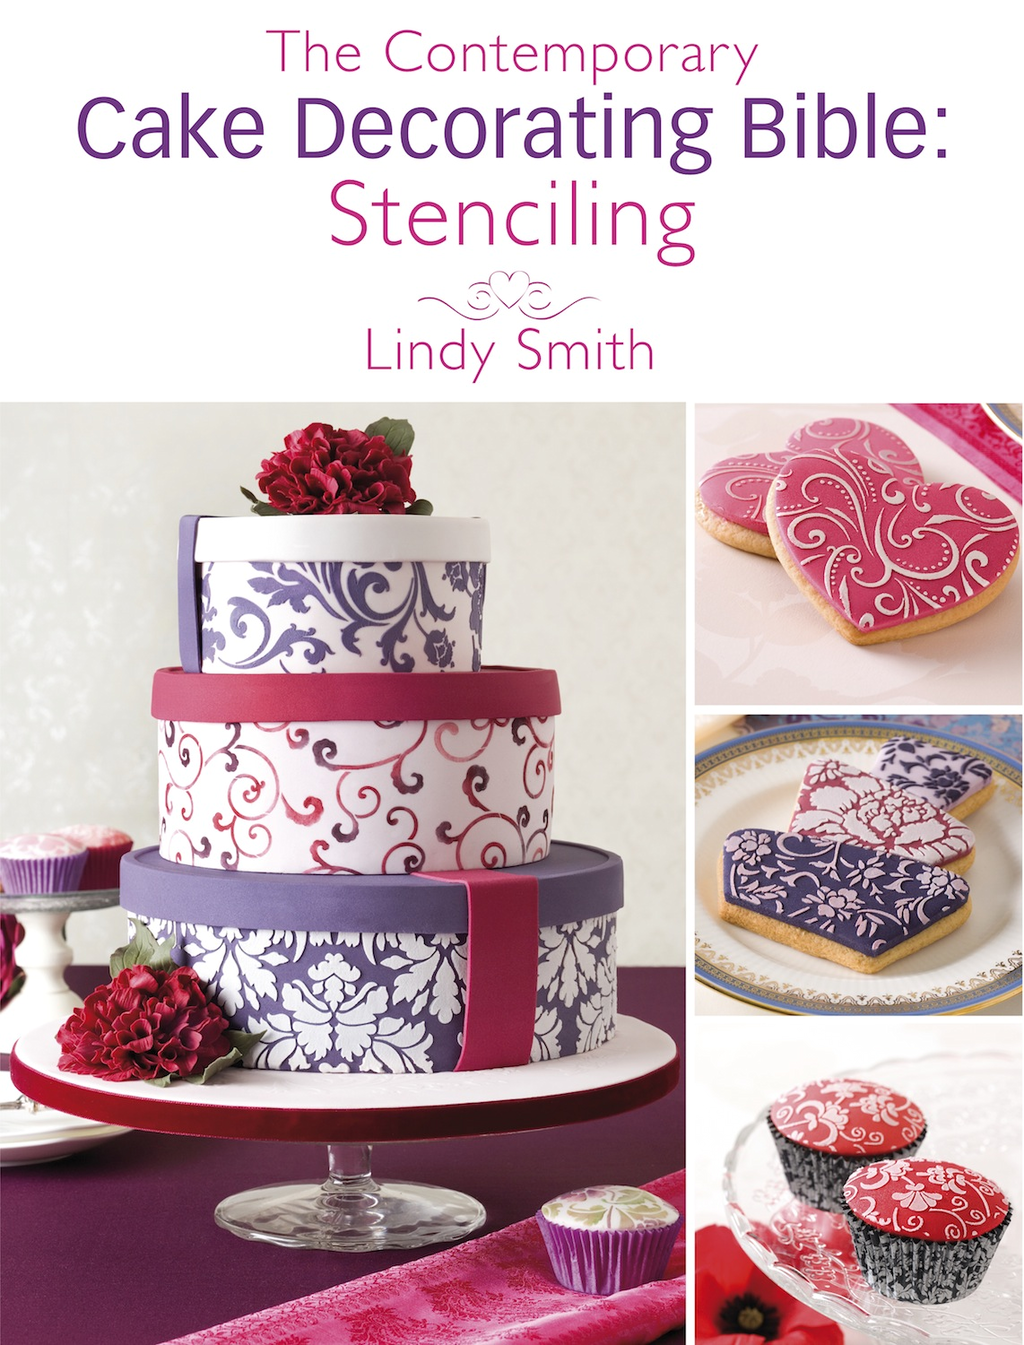 The Contemporary Cake Decorating Bible: Stenciling: A sample chapter from The Contemporary Cake Decorating Bible By: Lindy Smith